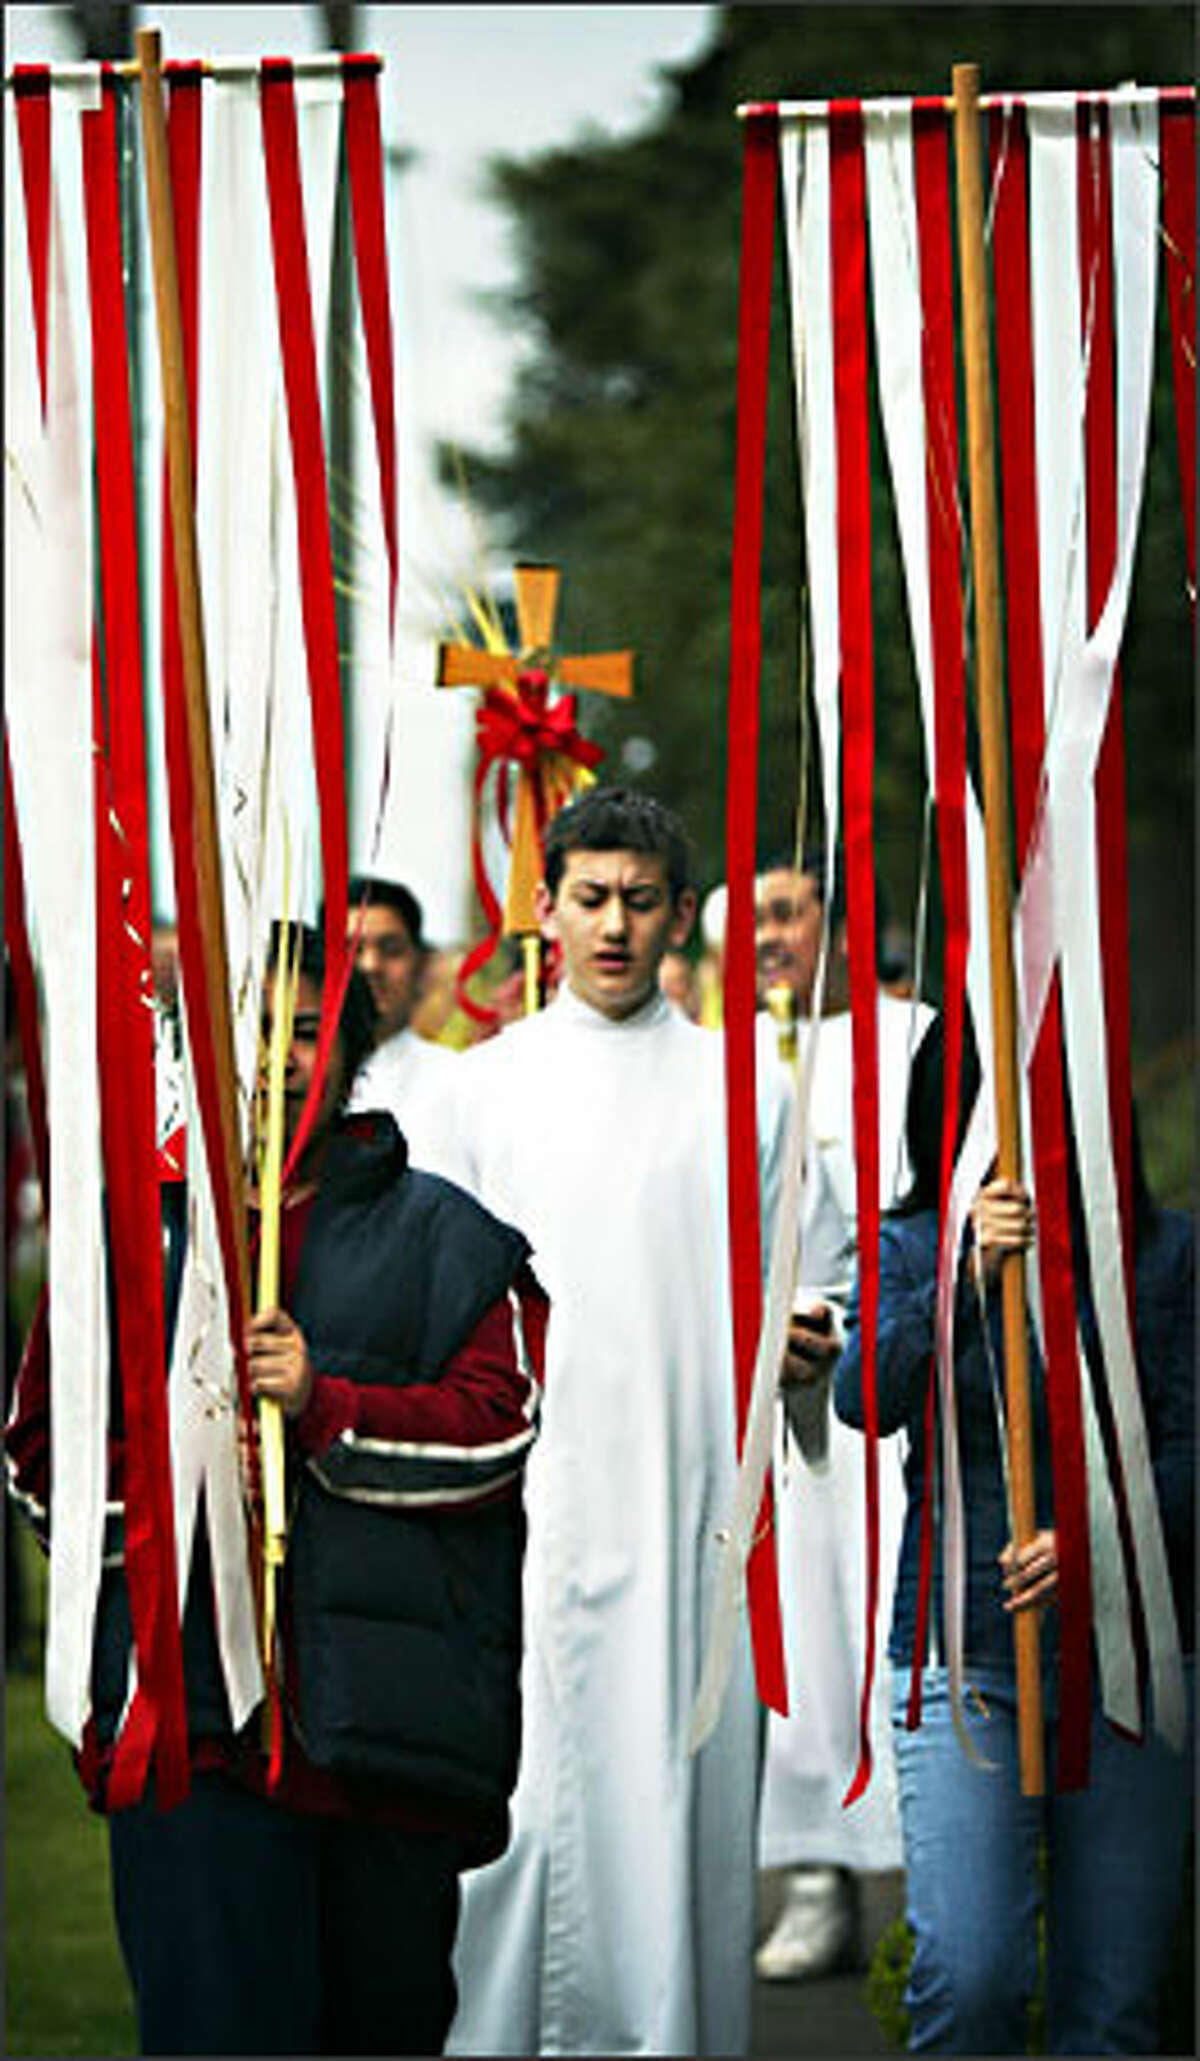 A parishoner holds a cross made from a palm frond during a Palm Sunday procession at St. George Parish in south Seattle on Sunday. Parishoners walked from St. George's School to the church down the block, carrying palm fronds and singing in celebration of Palm Sunday. Palm Sunday is celebrated as the day that Jesus entered Jerusalem and begins a holy week that ends with Easter Sunday.